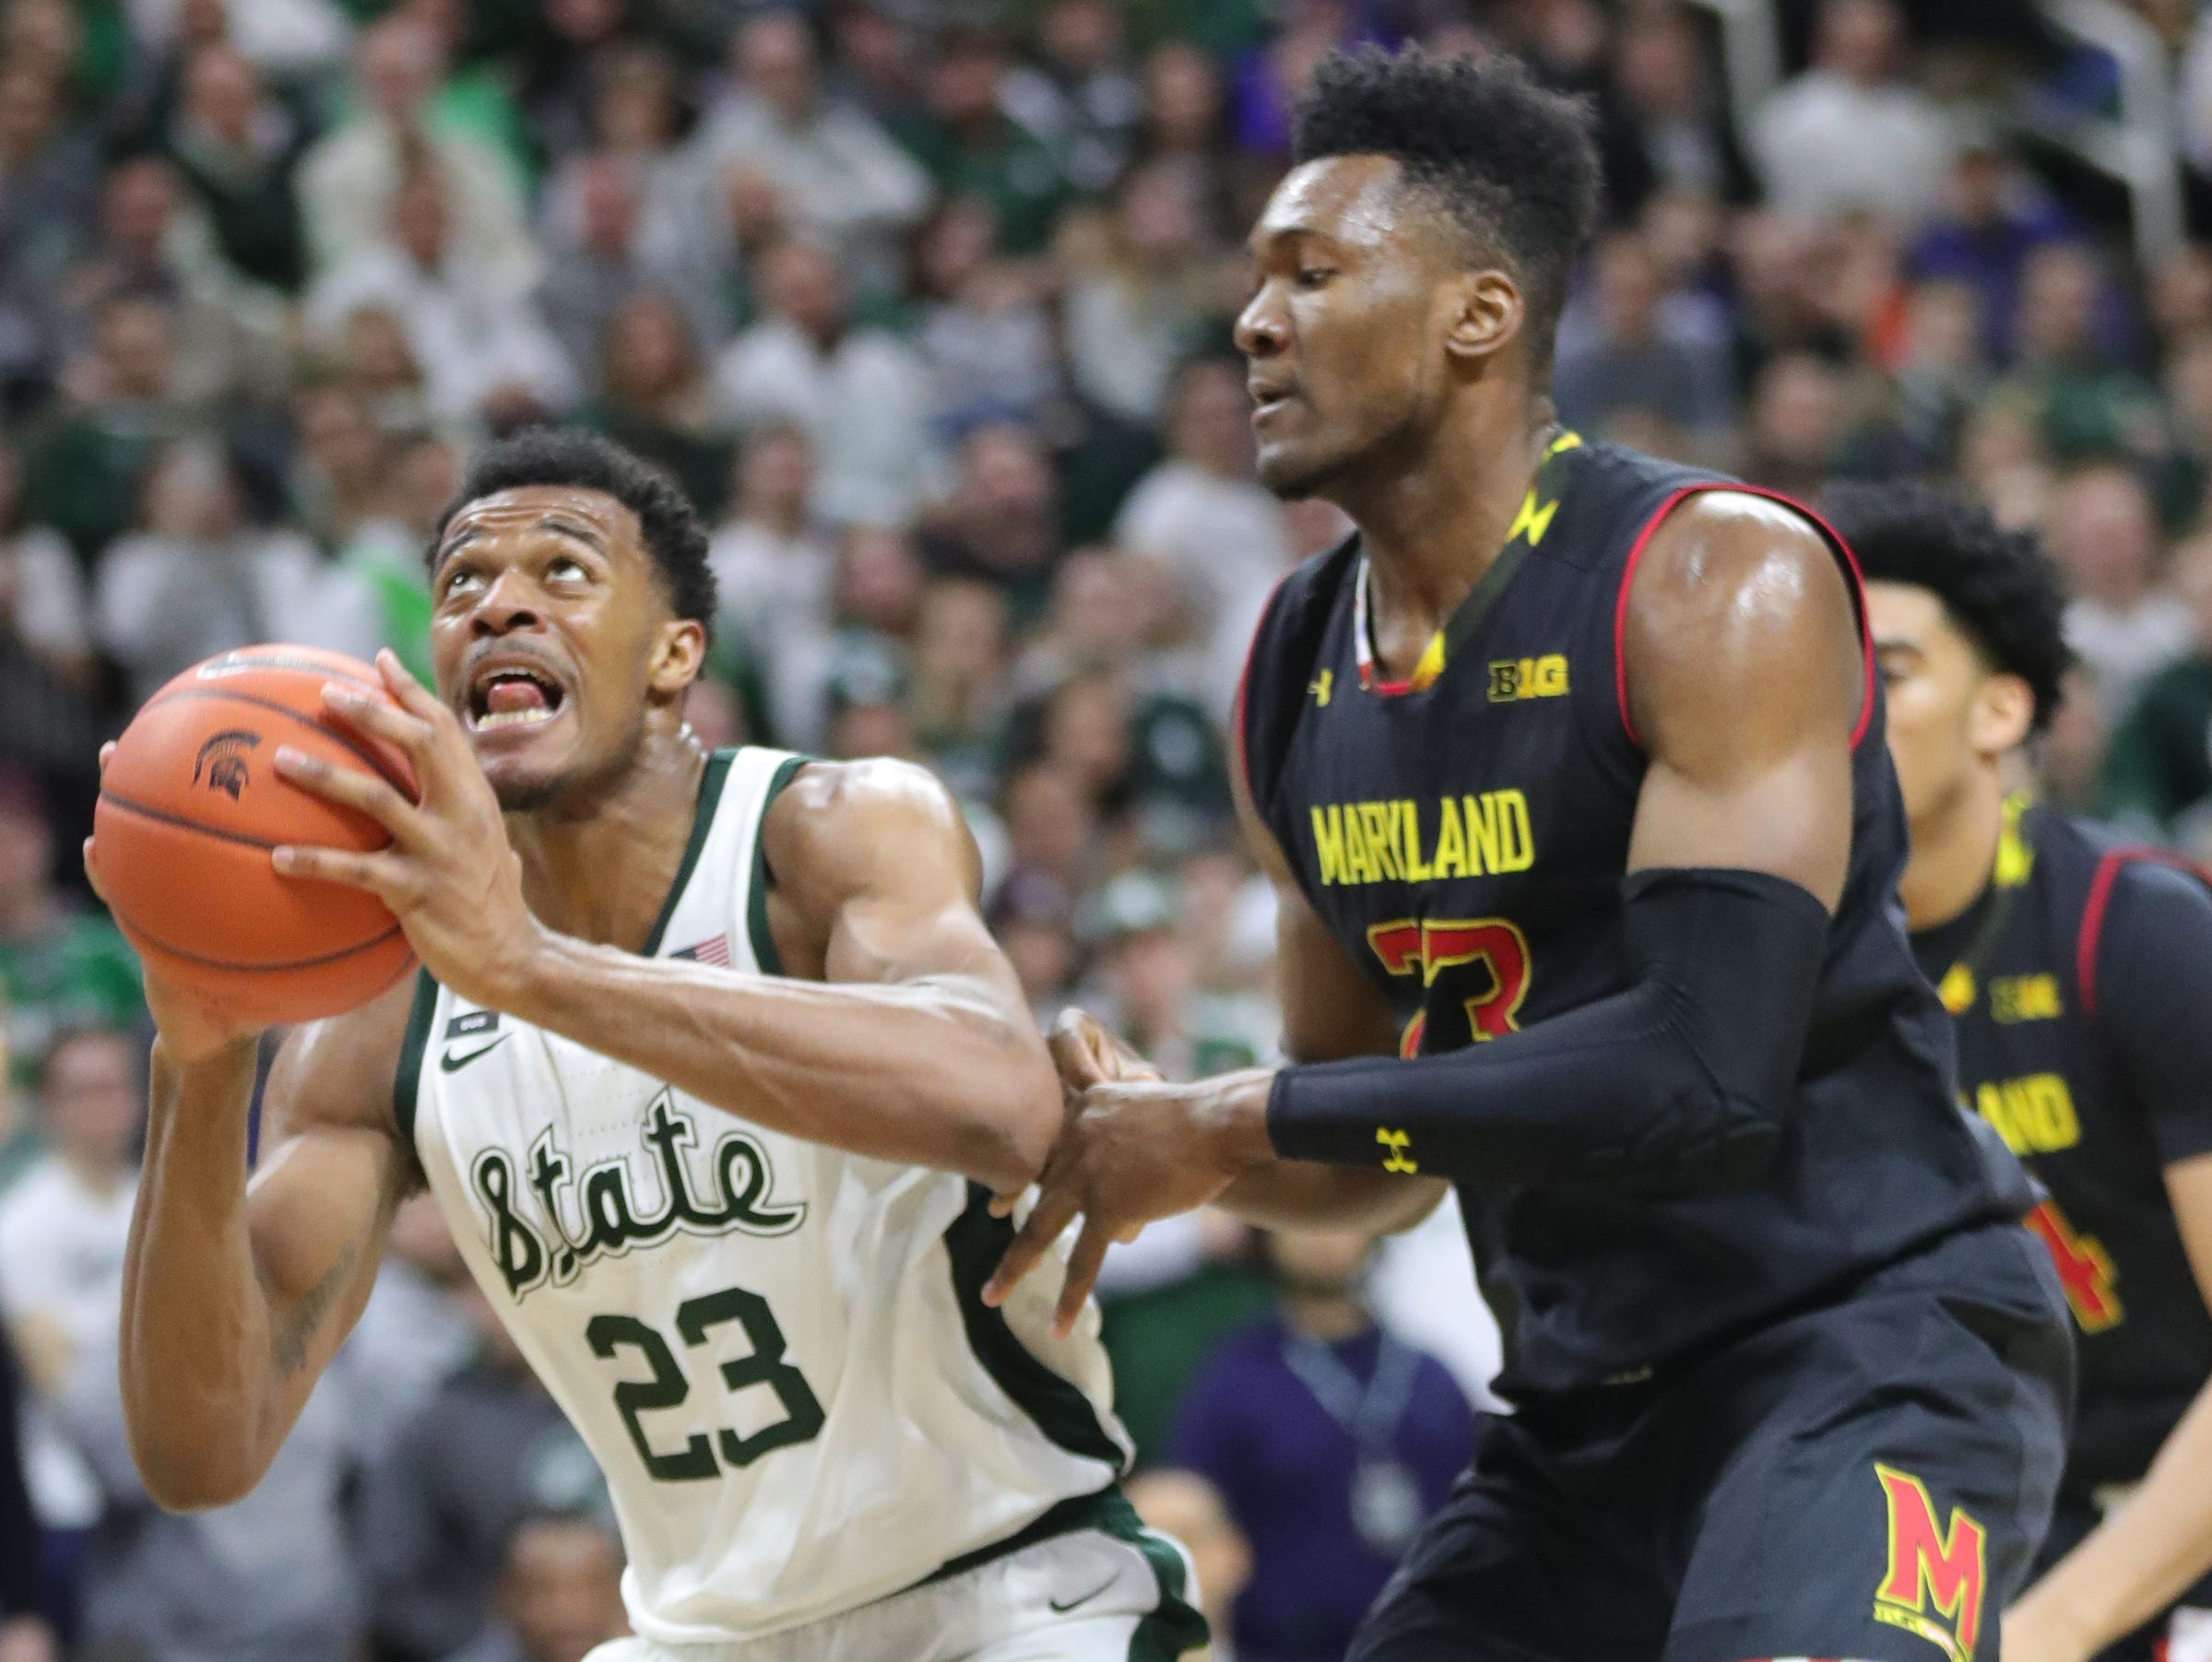 Michigan State forward Xavier Tillman drives against Maryland forward Bruno Fernando during second-half action Monday, January 21, 2019 at the Breslin Center in East Lansing, Mich.